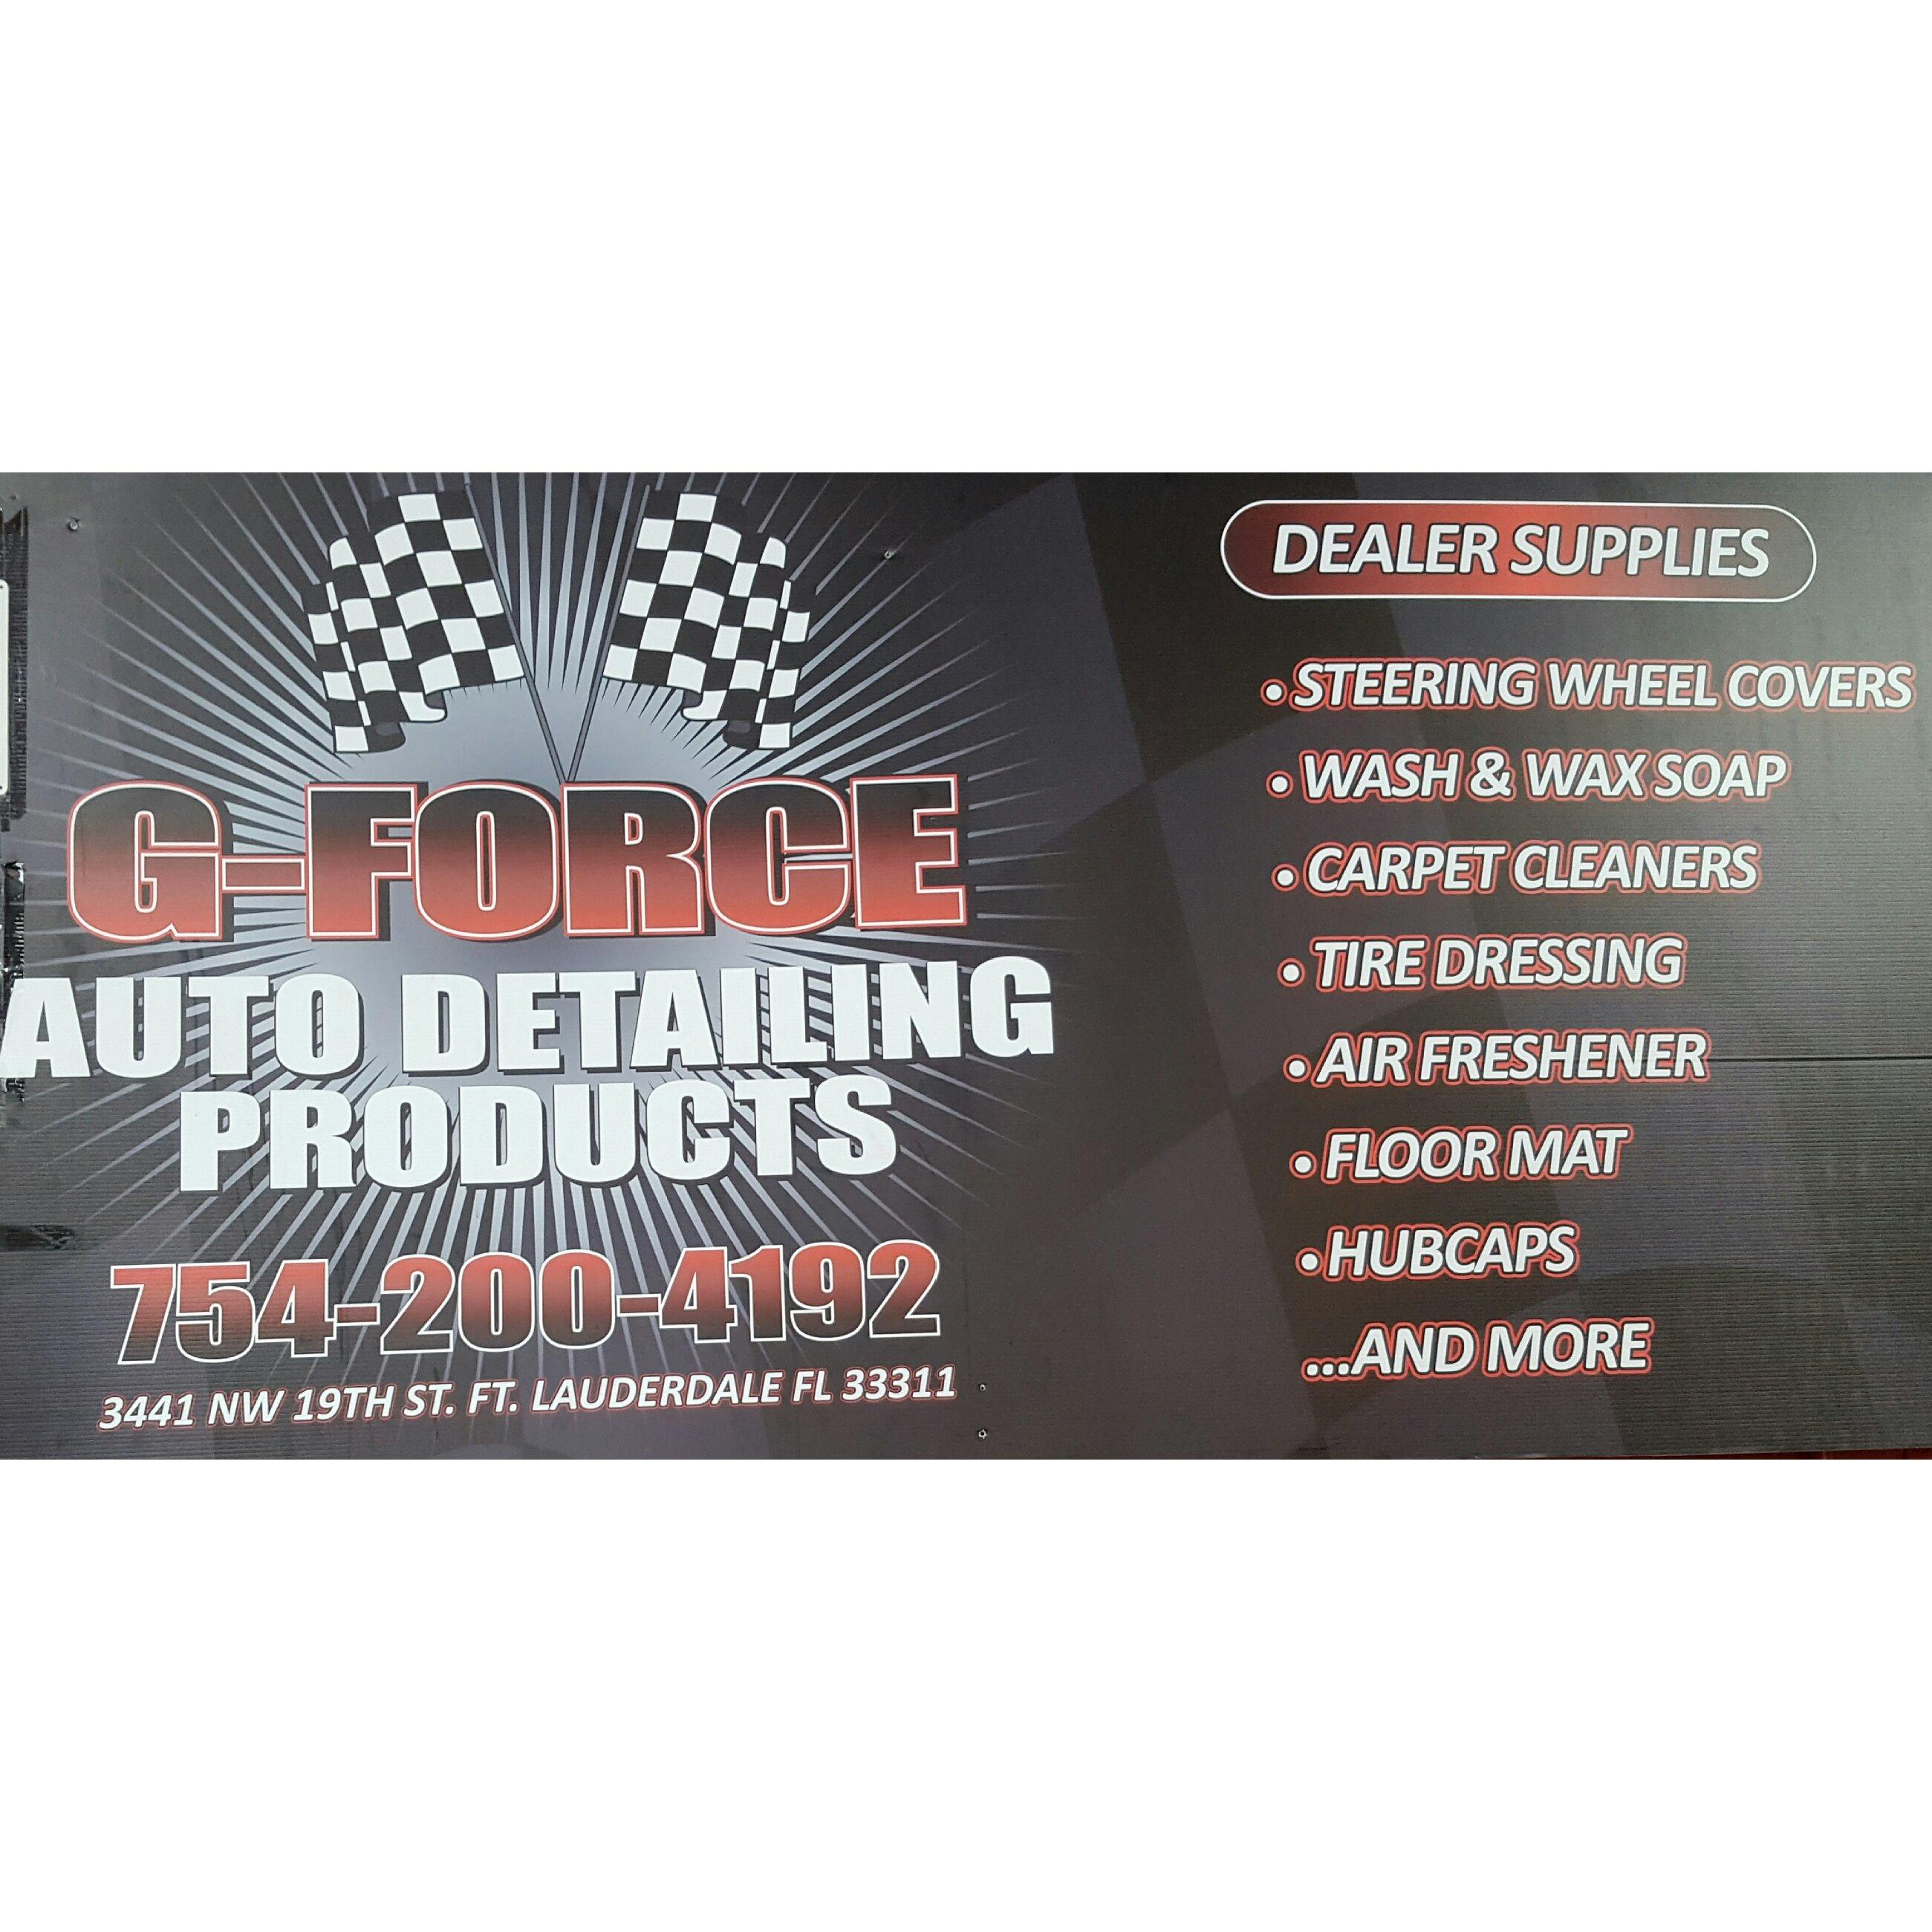 G-Force Auto Detailing Products